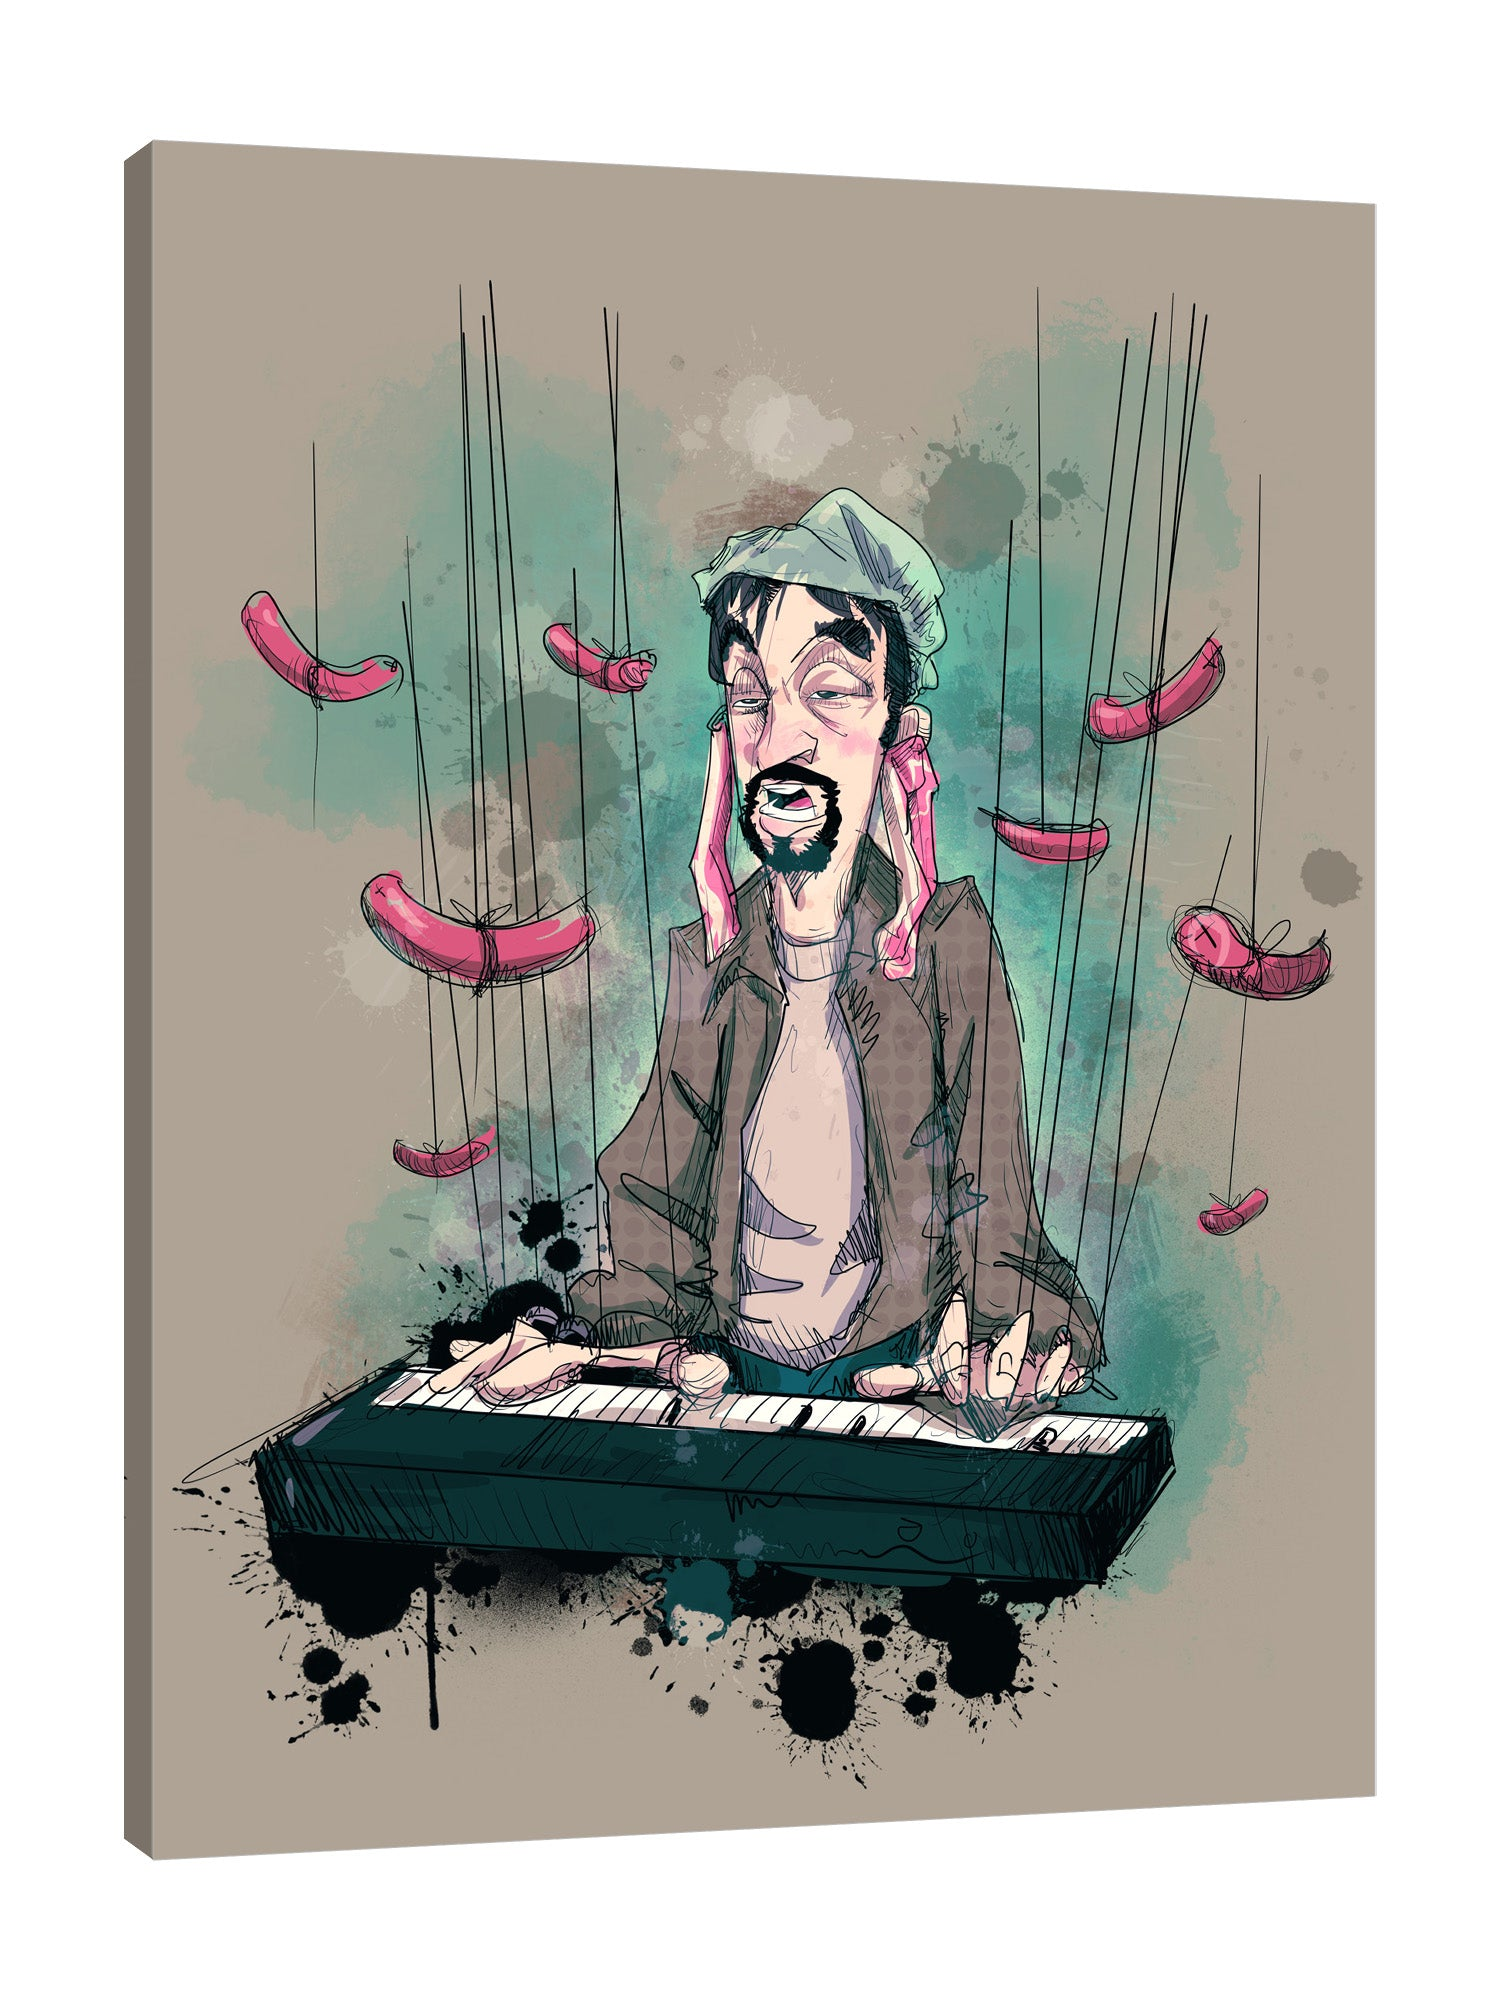 Ludwig-Van-Bacon,Vertical,3X4,Modern & Contemporary,People,Entertainment,Food & Beverage,entertainment,man,daddy,sausage,sausages,food,piano,pianist,musician,music,splatter,splatters,lines,Red,Pale Green,Black,Mint Blue,White,Mist Gray,Gray